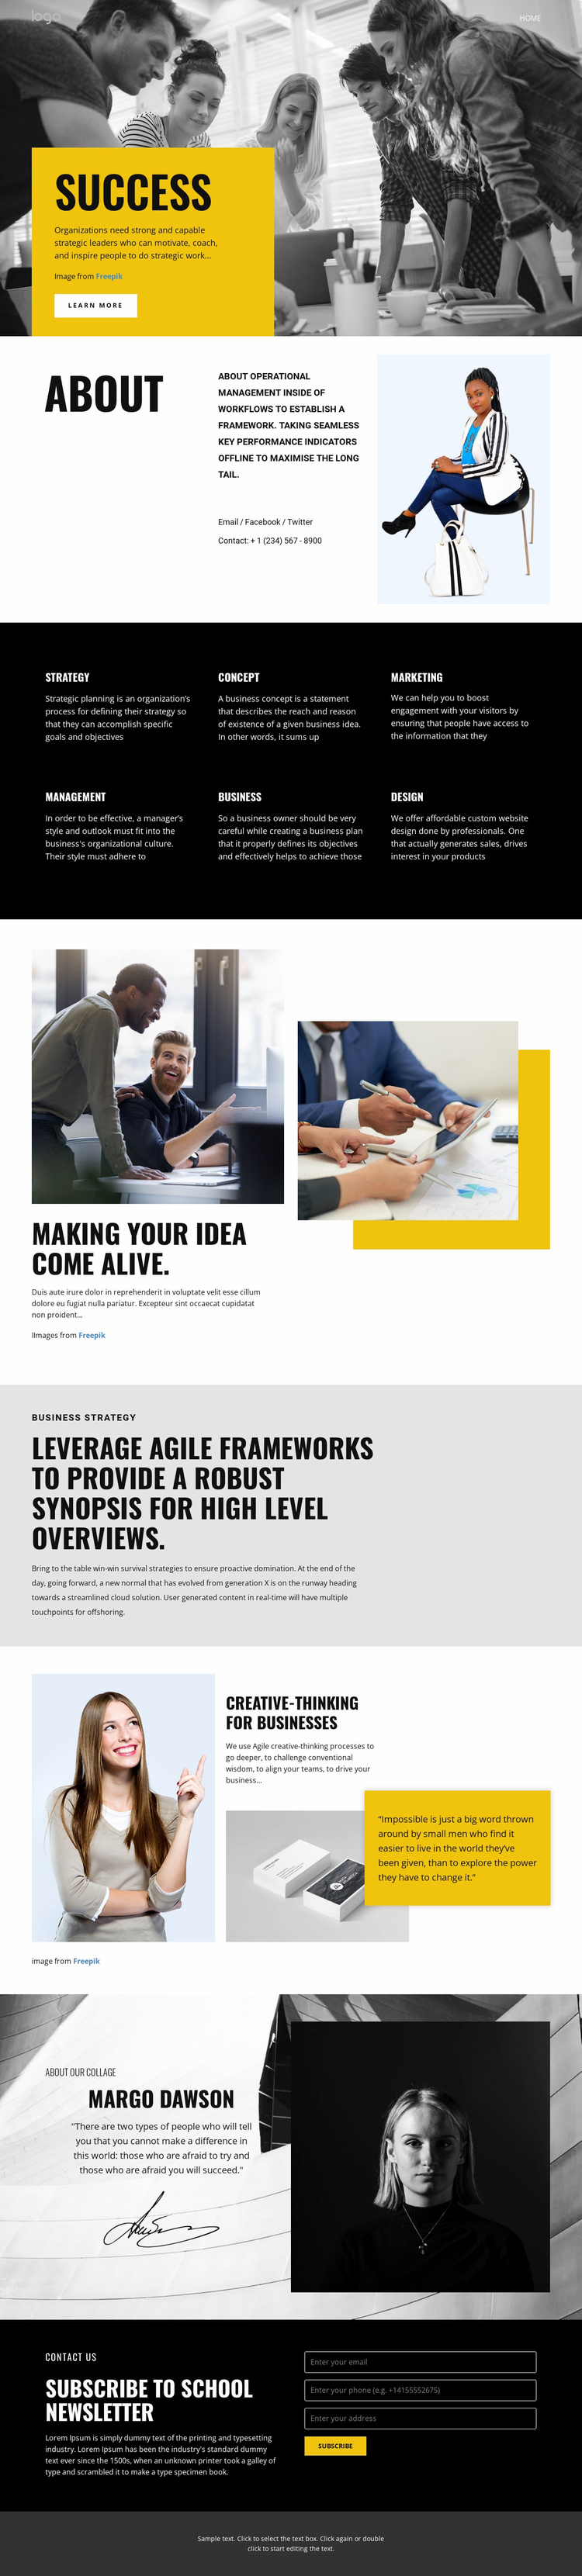 Capable people in businesses Website Template